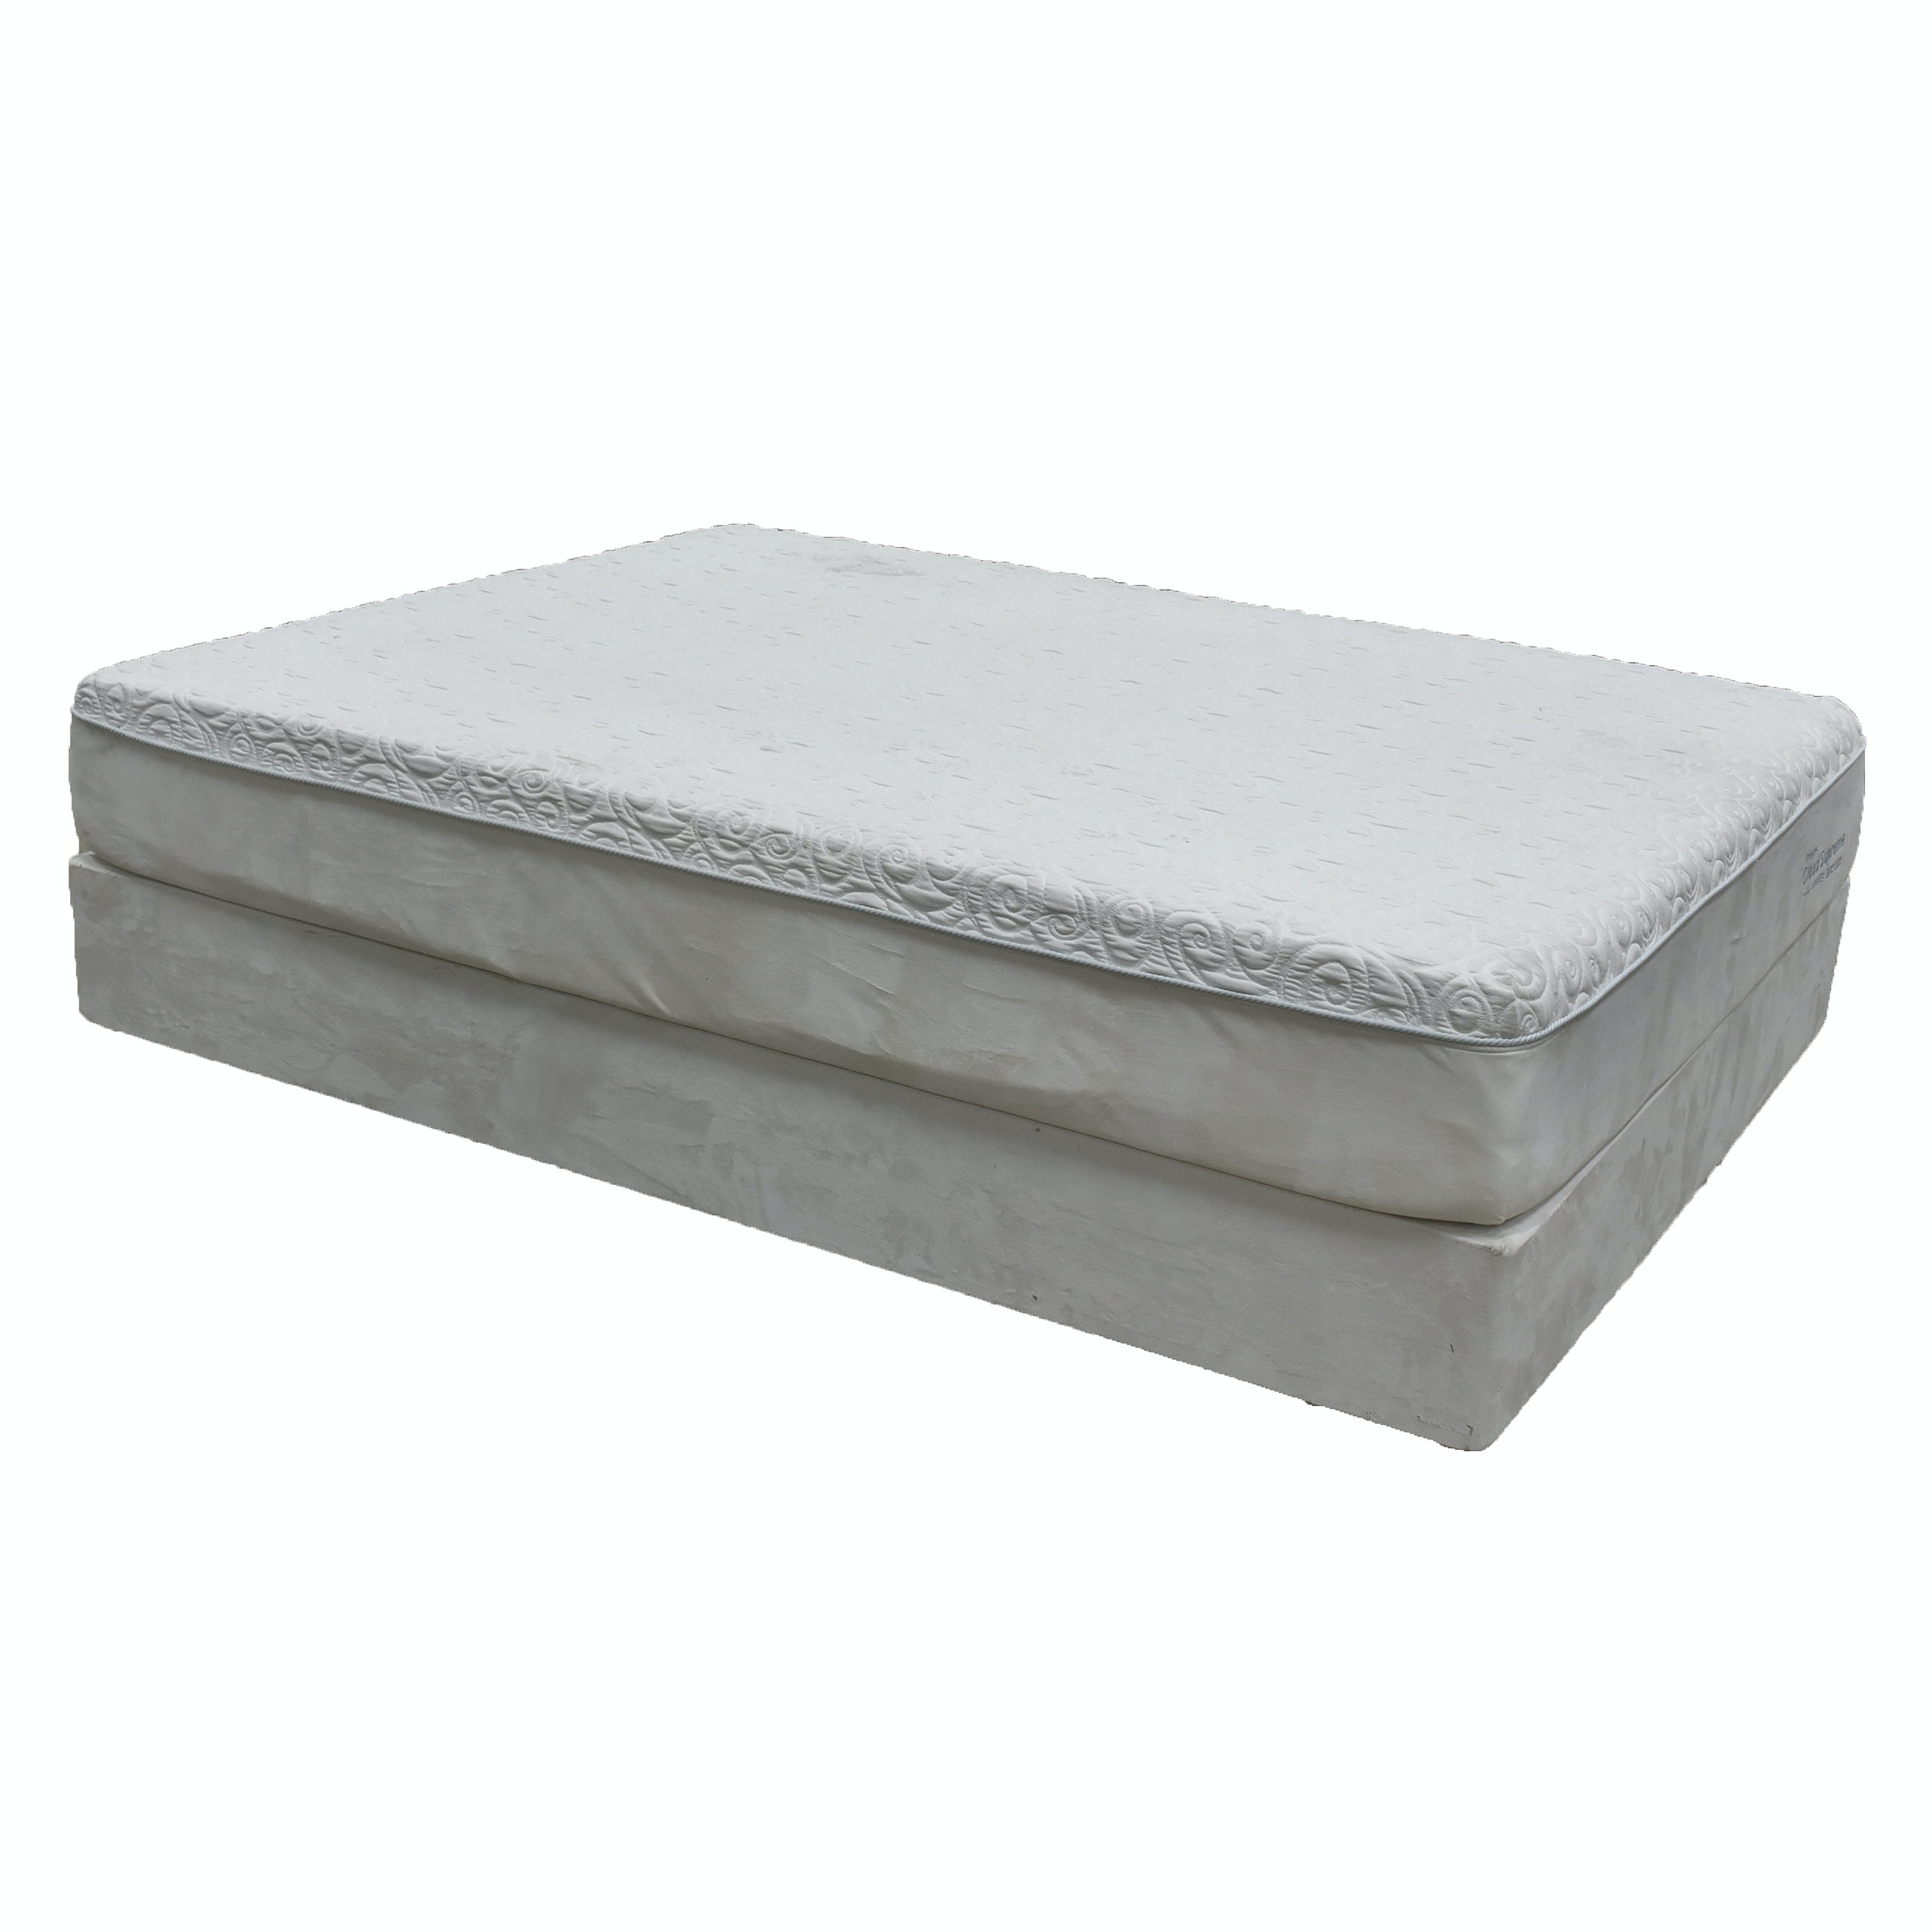 Tempur Cloud Supreme Breeze Queen-Sized Mattress